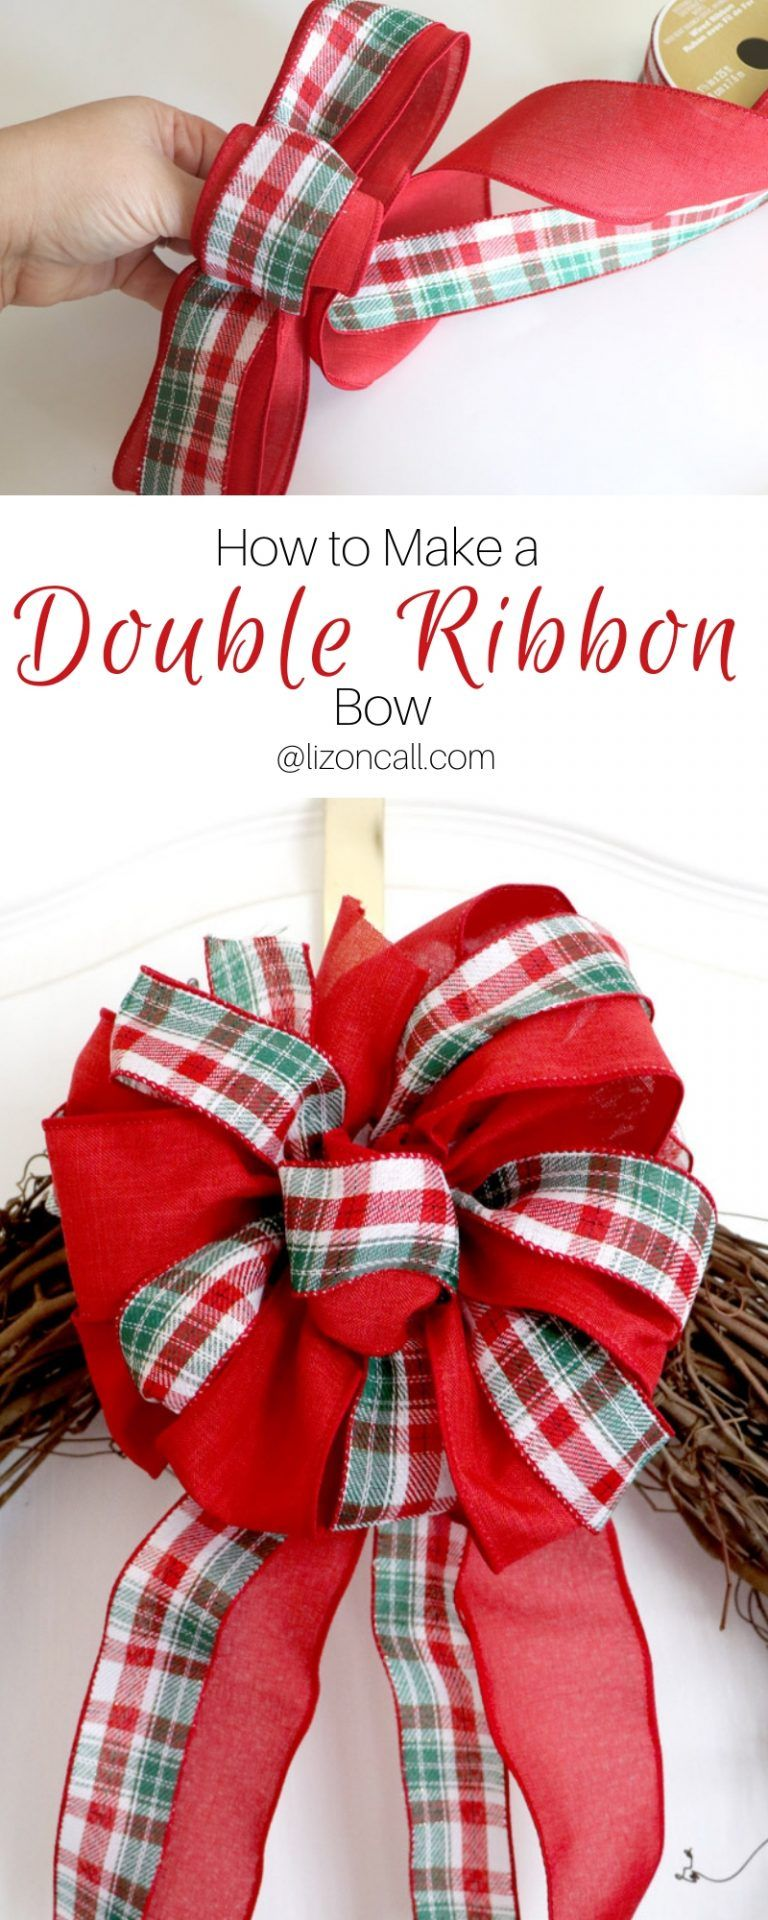 How To Make A Double Ribbon Bow For A Wreath Ribbon bow